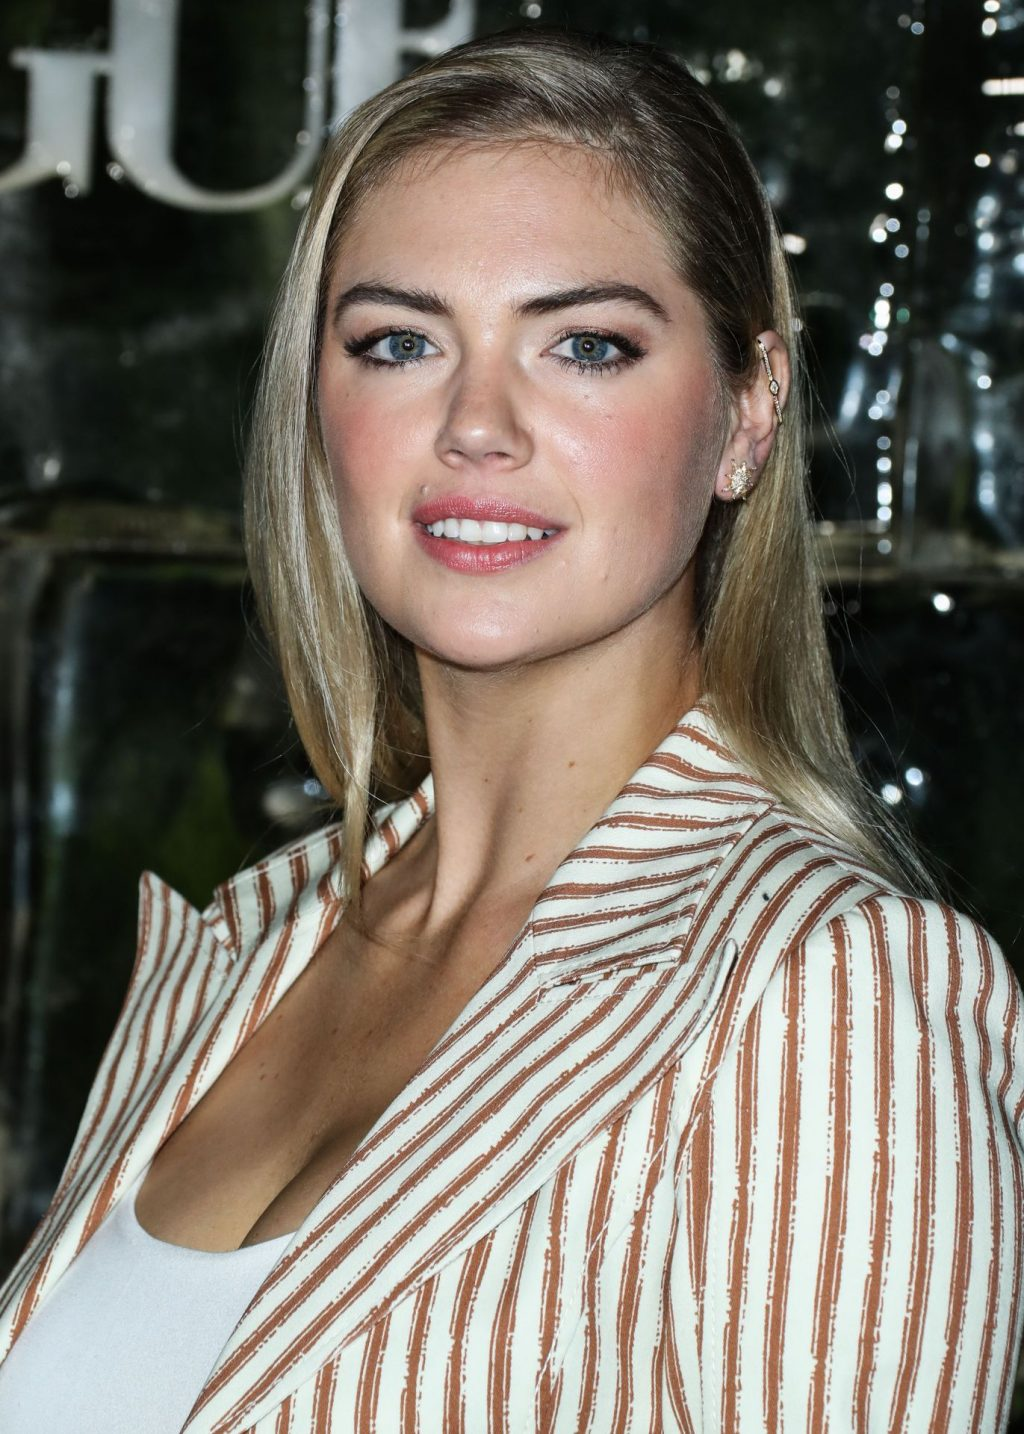 Kate Upton Sexy The Fappening Blog 77 1024x1434 - Kate Upton Attends Canada Goose And Vogue Cocktails & Conversations (104 Photos)